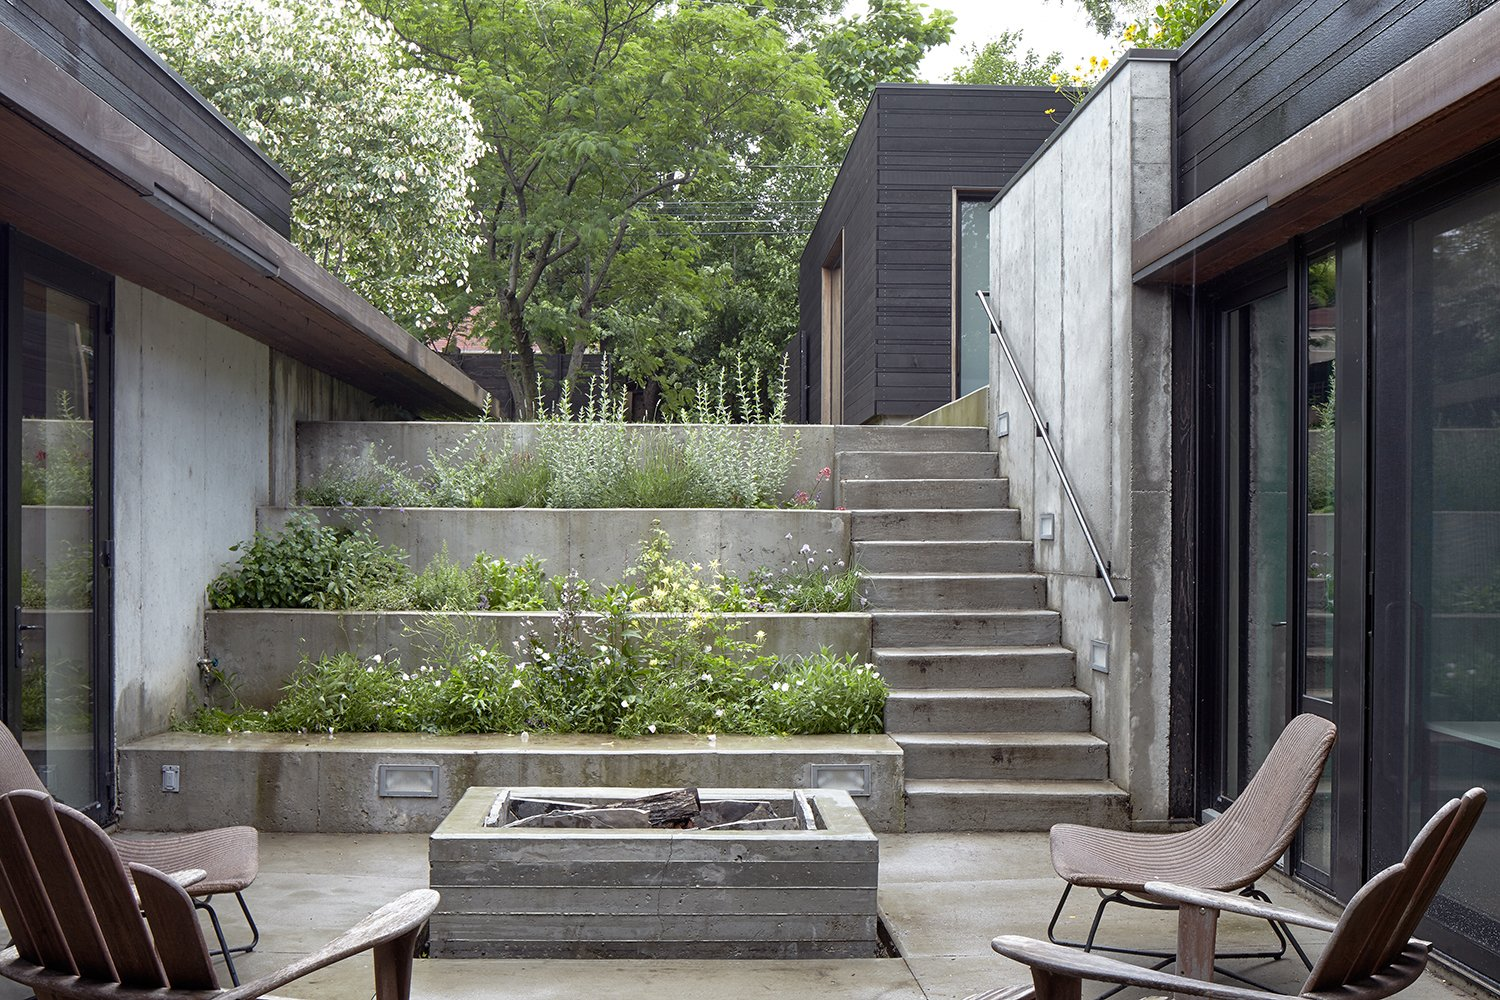 A stepped concrete garden planted with herbs and flowers marks the descent to the house. The courtyard is the focal point of the U-shaped structure; there is clear visibility between the kitchen on one side and the children's bedrooms on the other. Tagged: Small Patio, Porch, Deck, Concrete Patio, Porch, Deck, Exterior, and Concrete Siding Material.  outdoors by Laura McLaughlin from Nature Reigns Supreme at a Verdant Kansas City Home